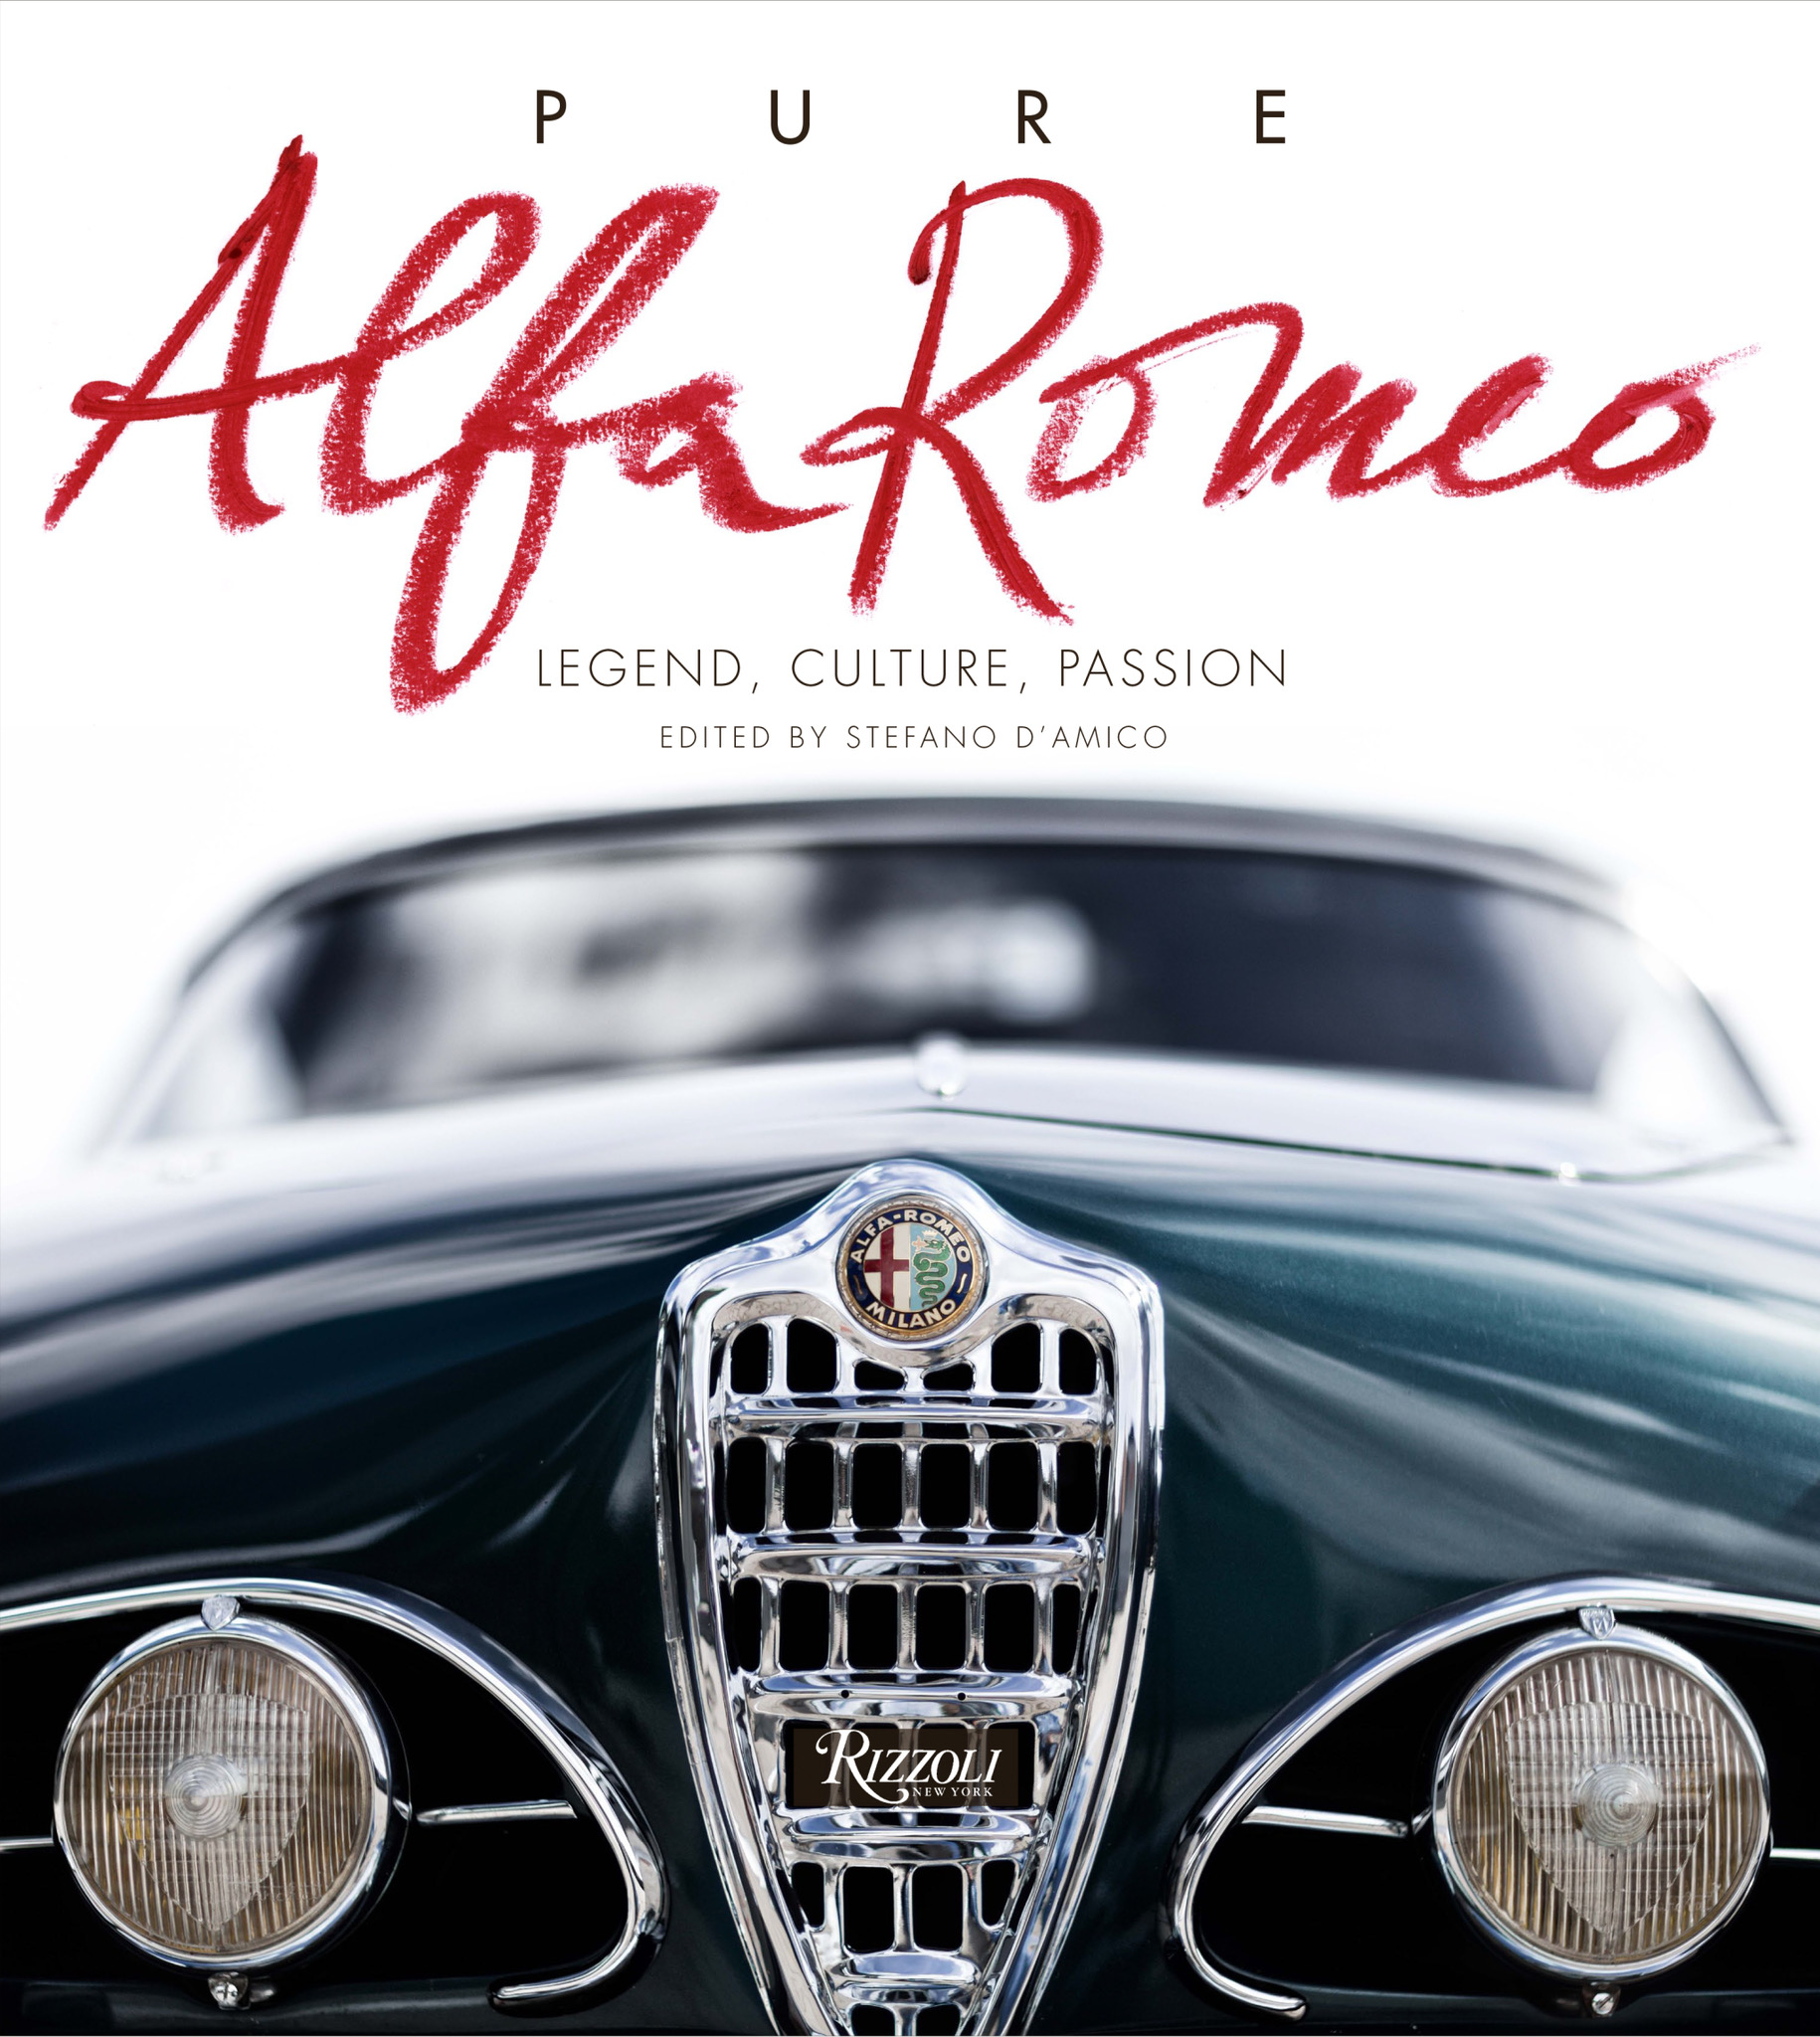 The legend, culture and passion of Alfa Romeo | ClassicCars.com Journal